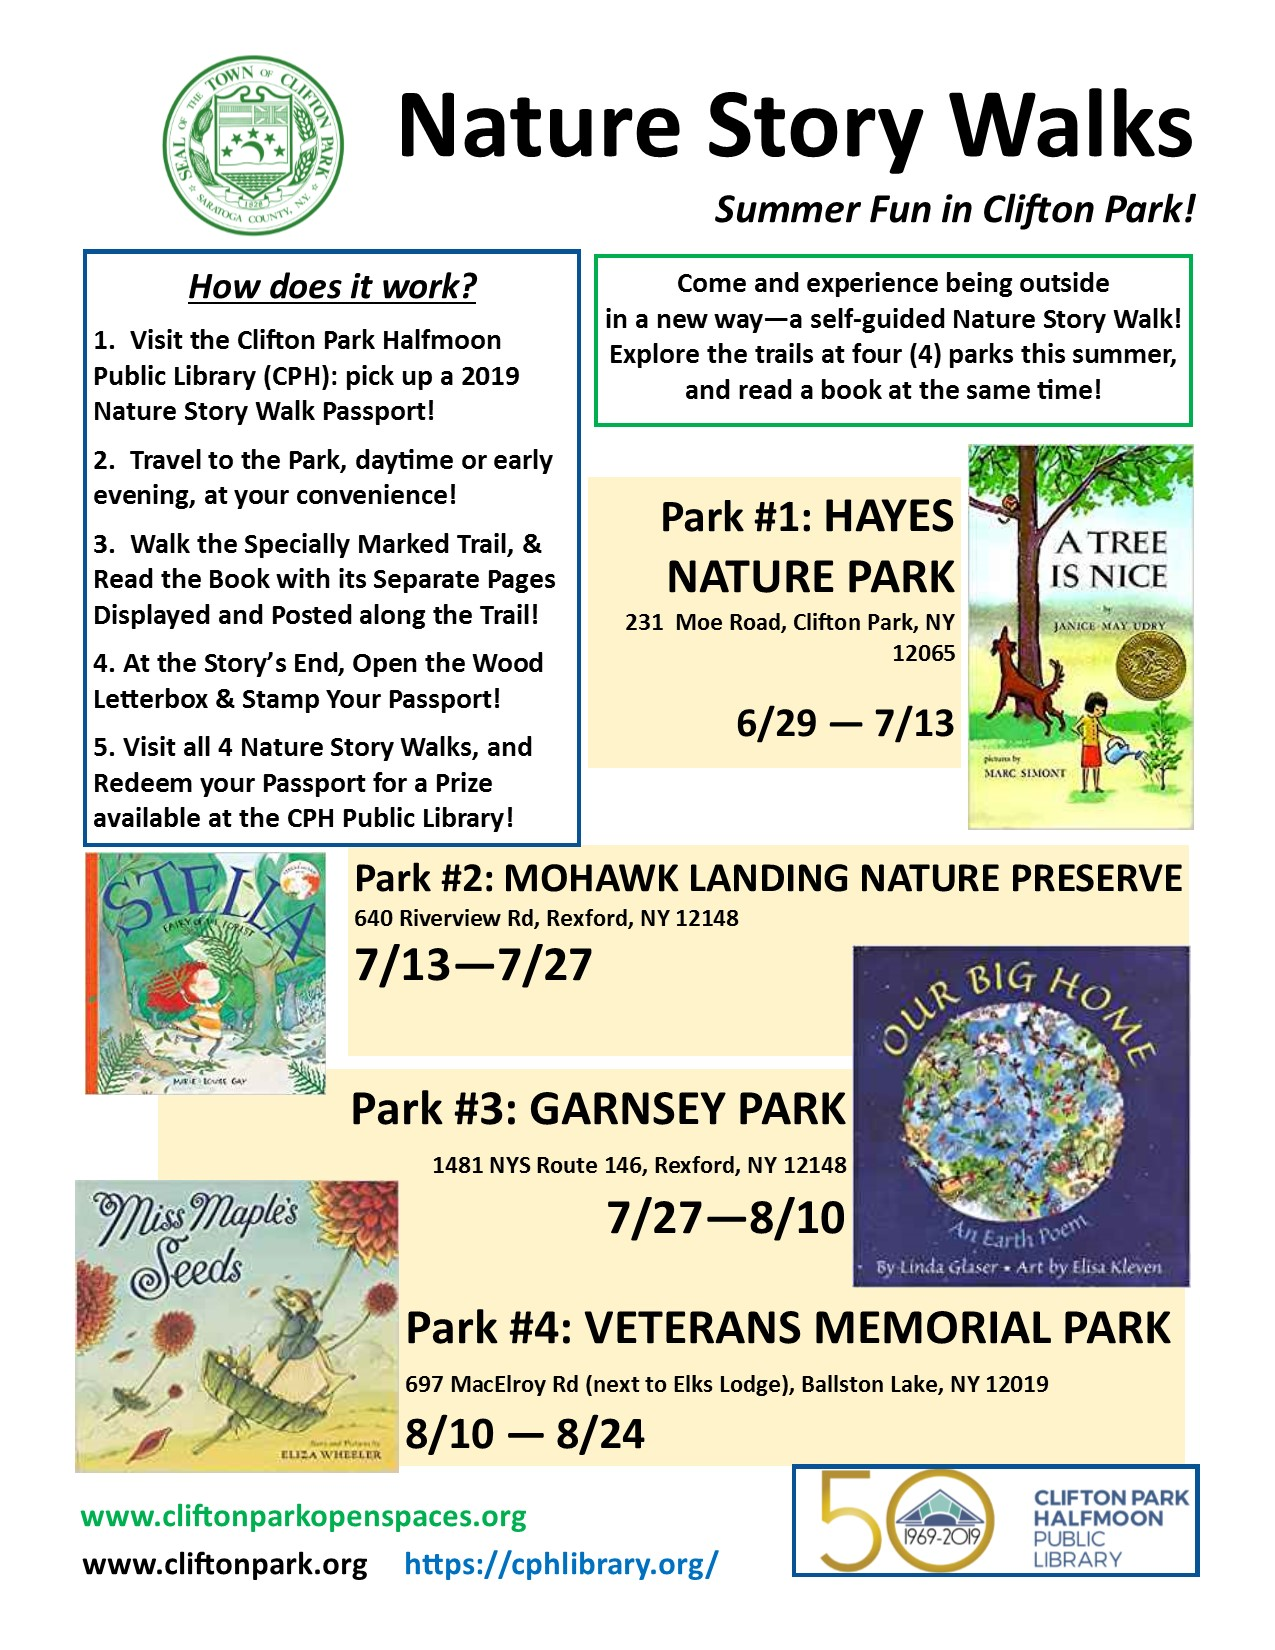 2019 Summer - Nature Story Walks in Clifton Park!